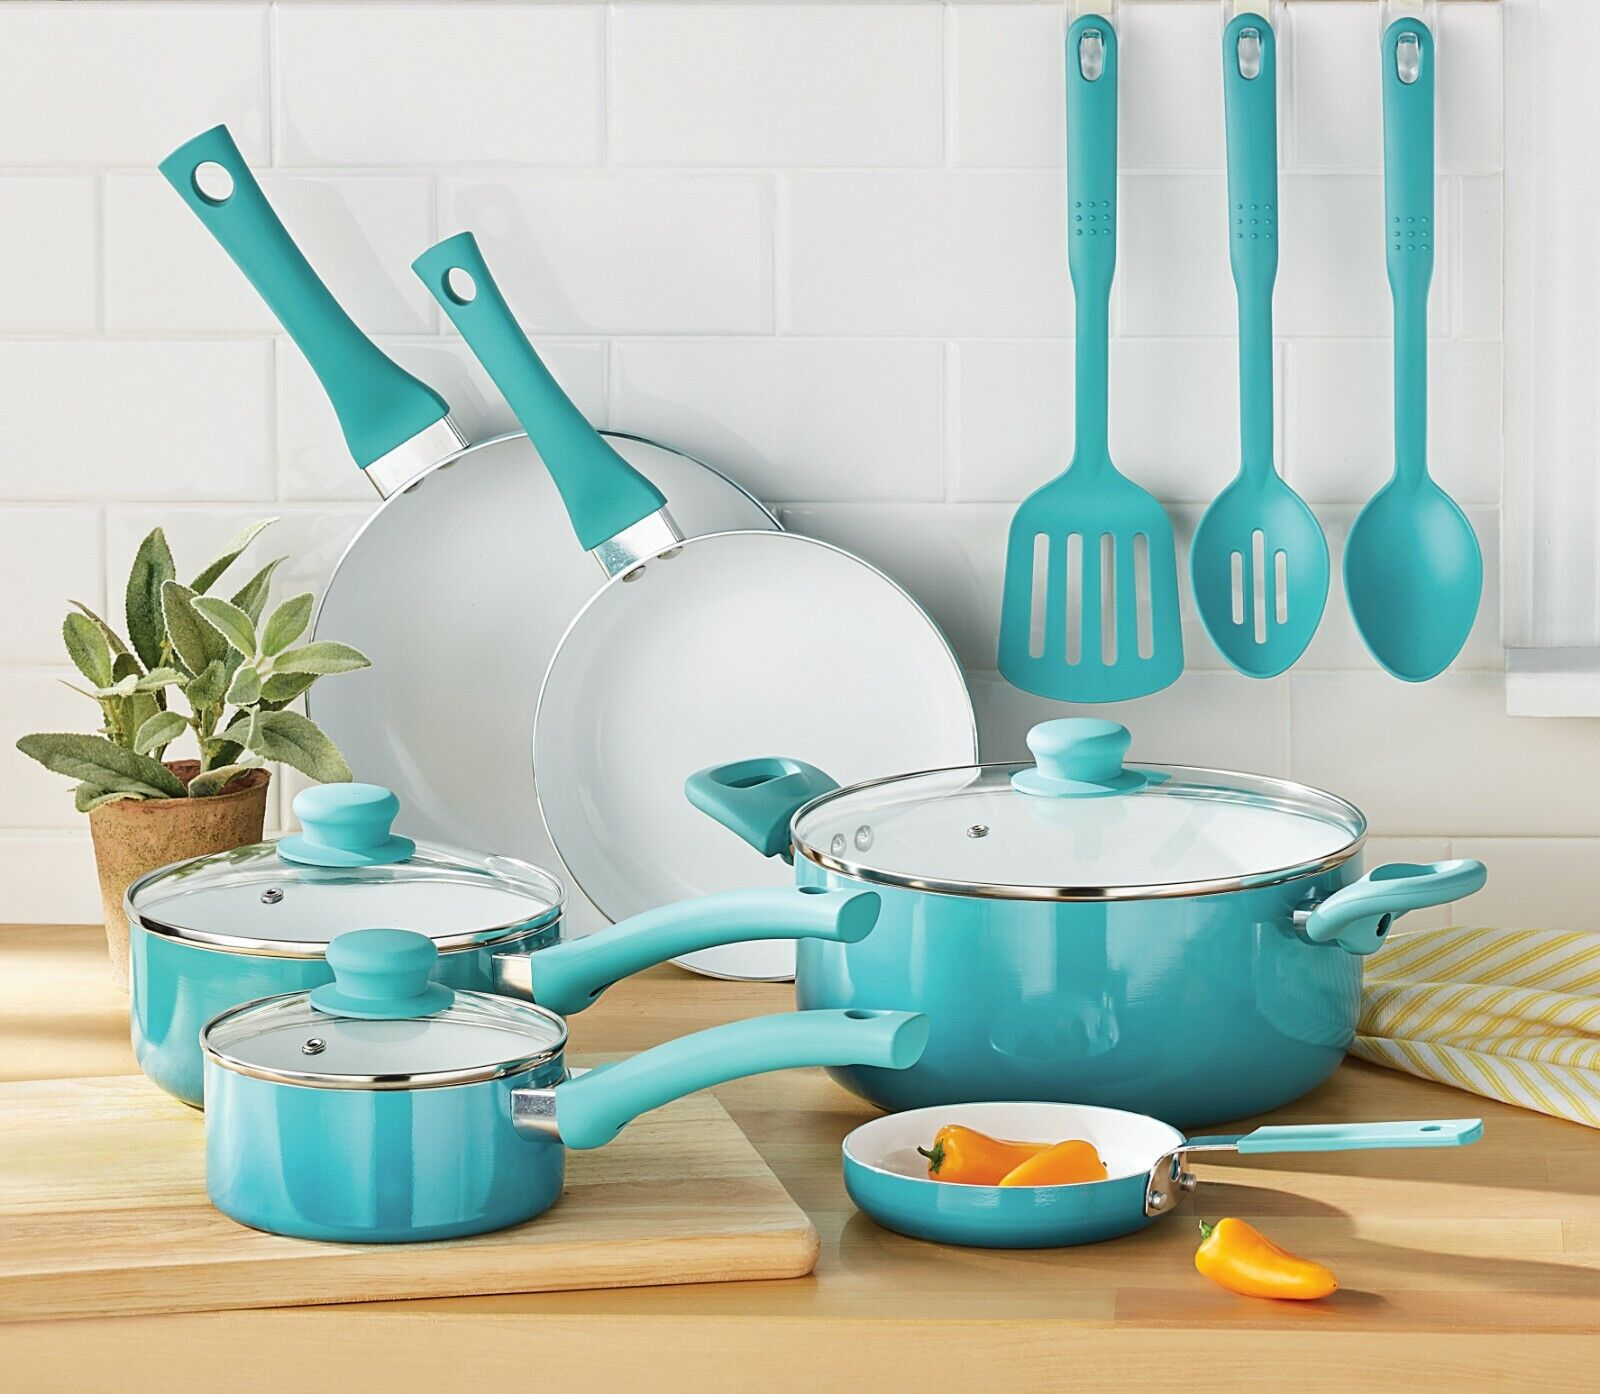 Ceramic Nonstick Cookware Set 12 Pieces Kitchen Pans/ Utensi